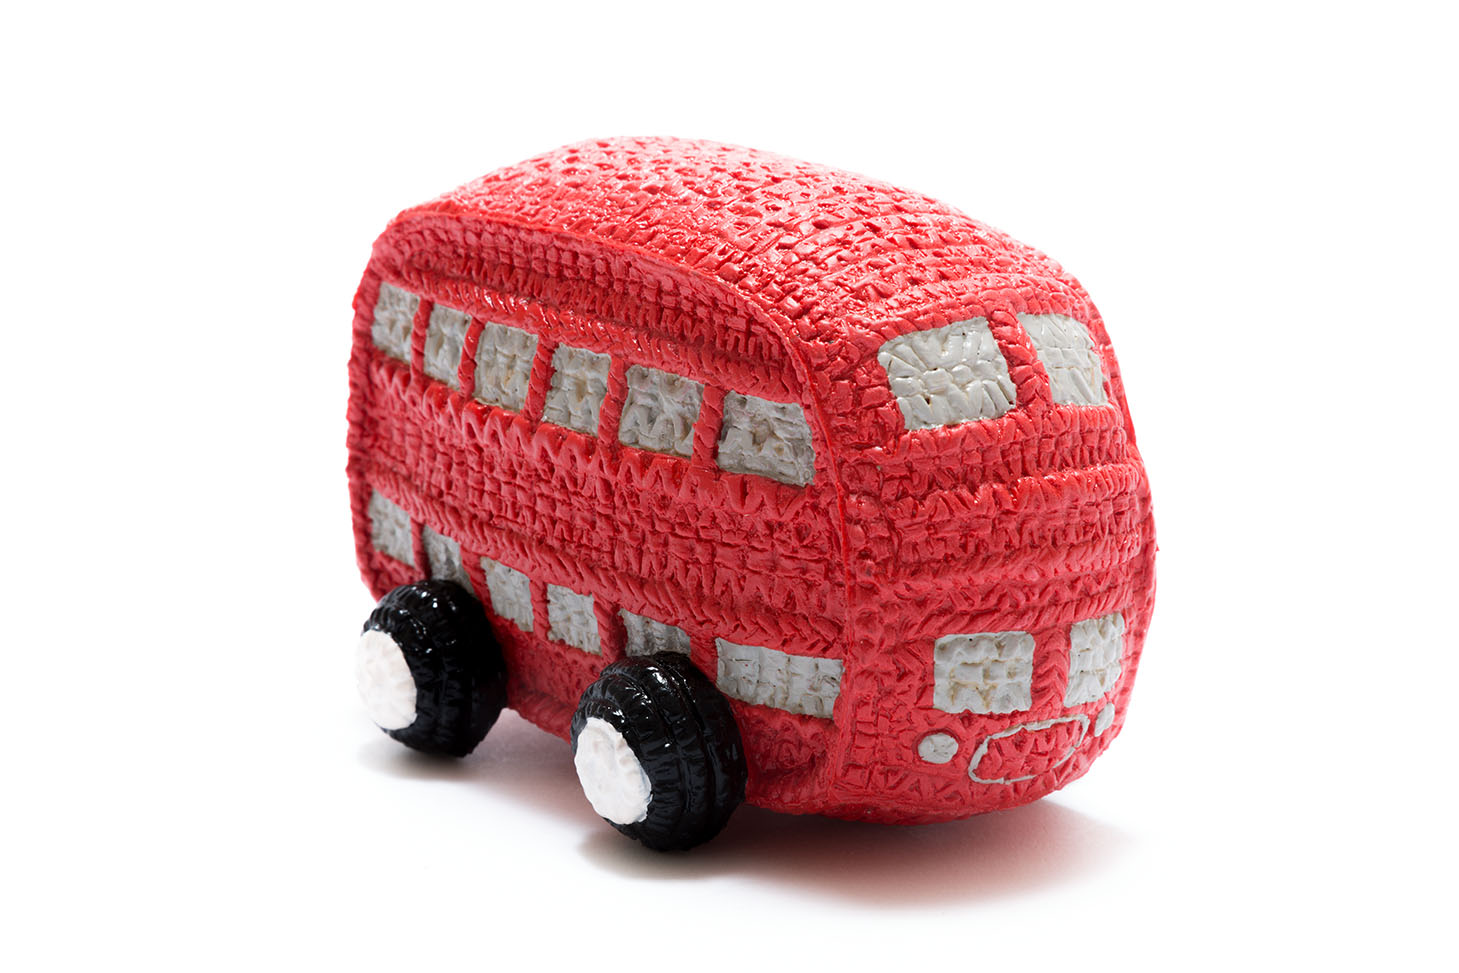 Natural rubber red double decker bus baby toy with grey windows and white and black wheels